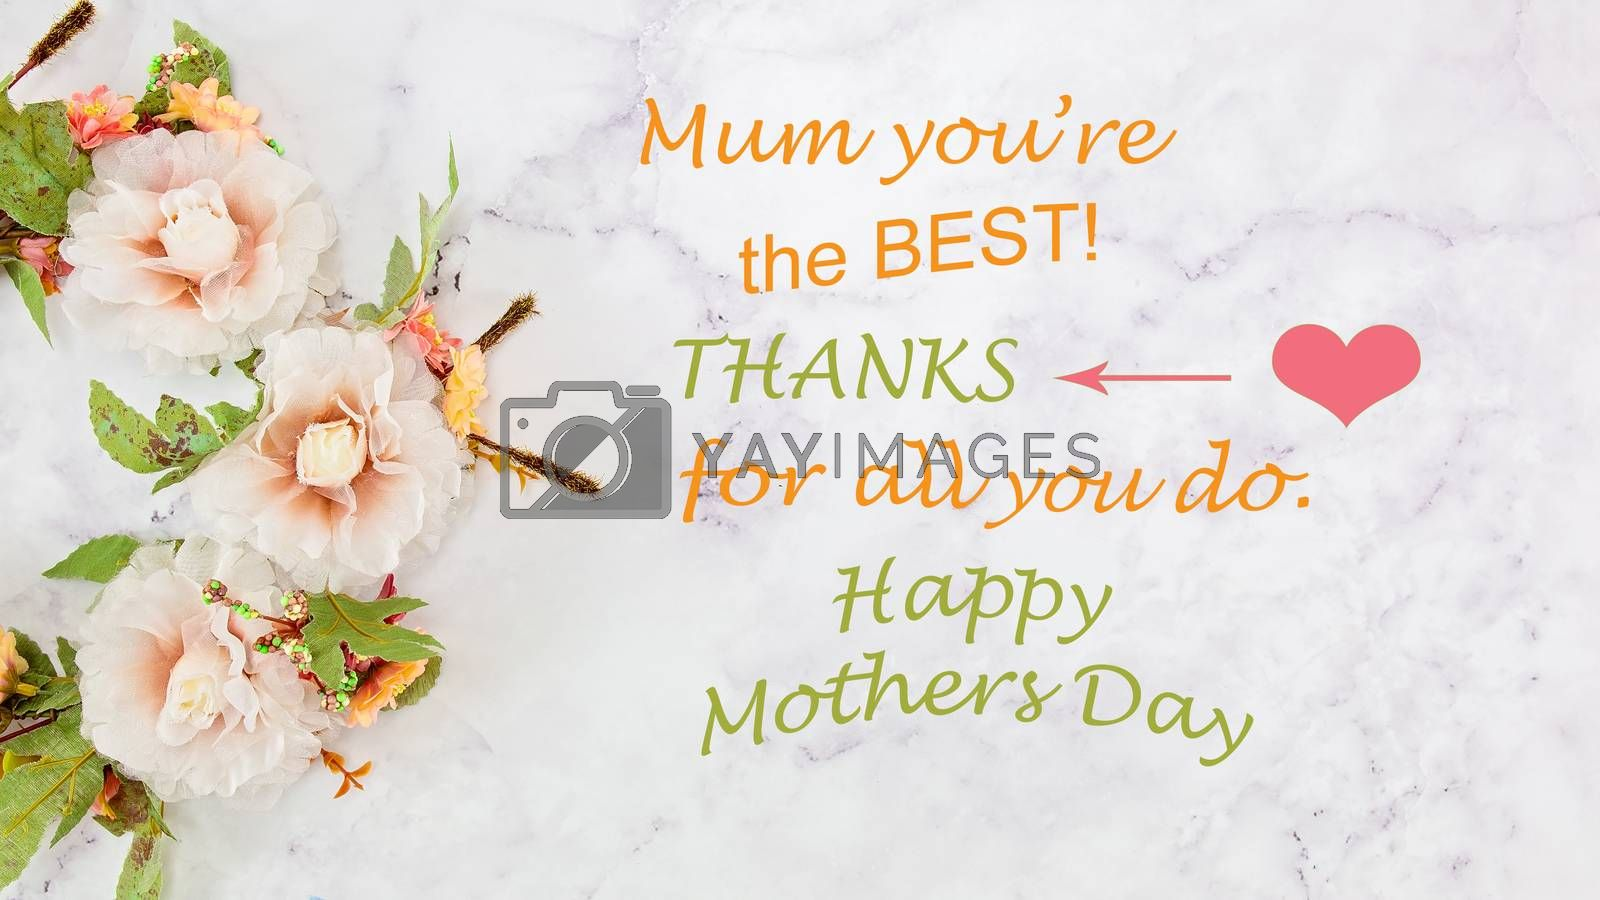 Mothers Day floral greeting card with text message on marbled background